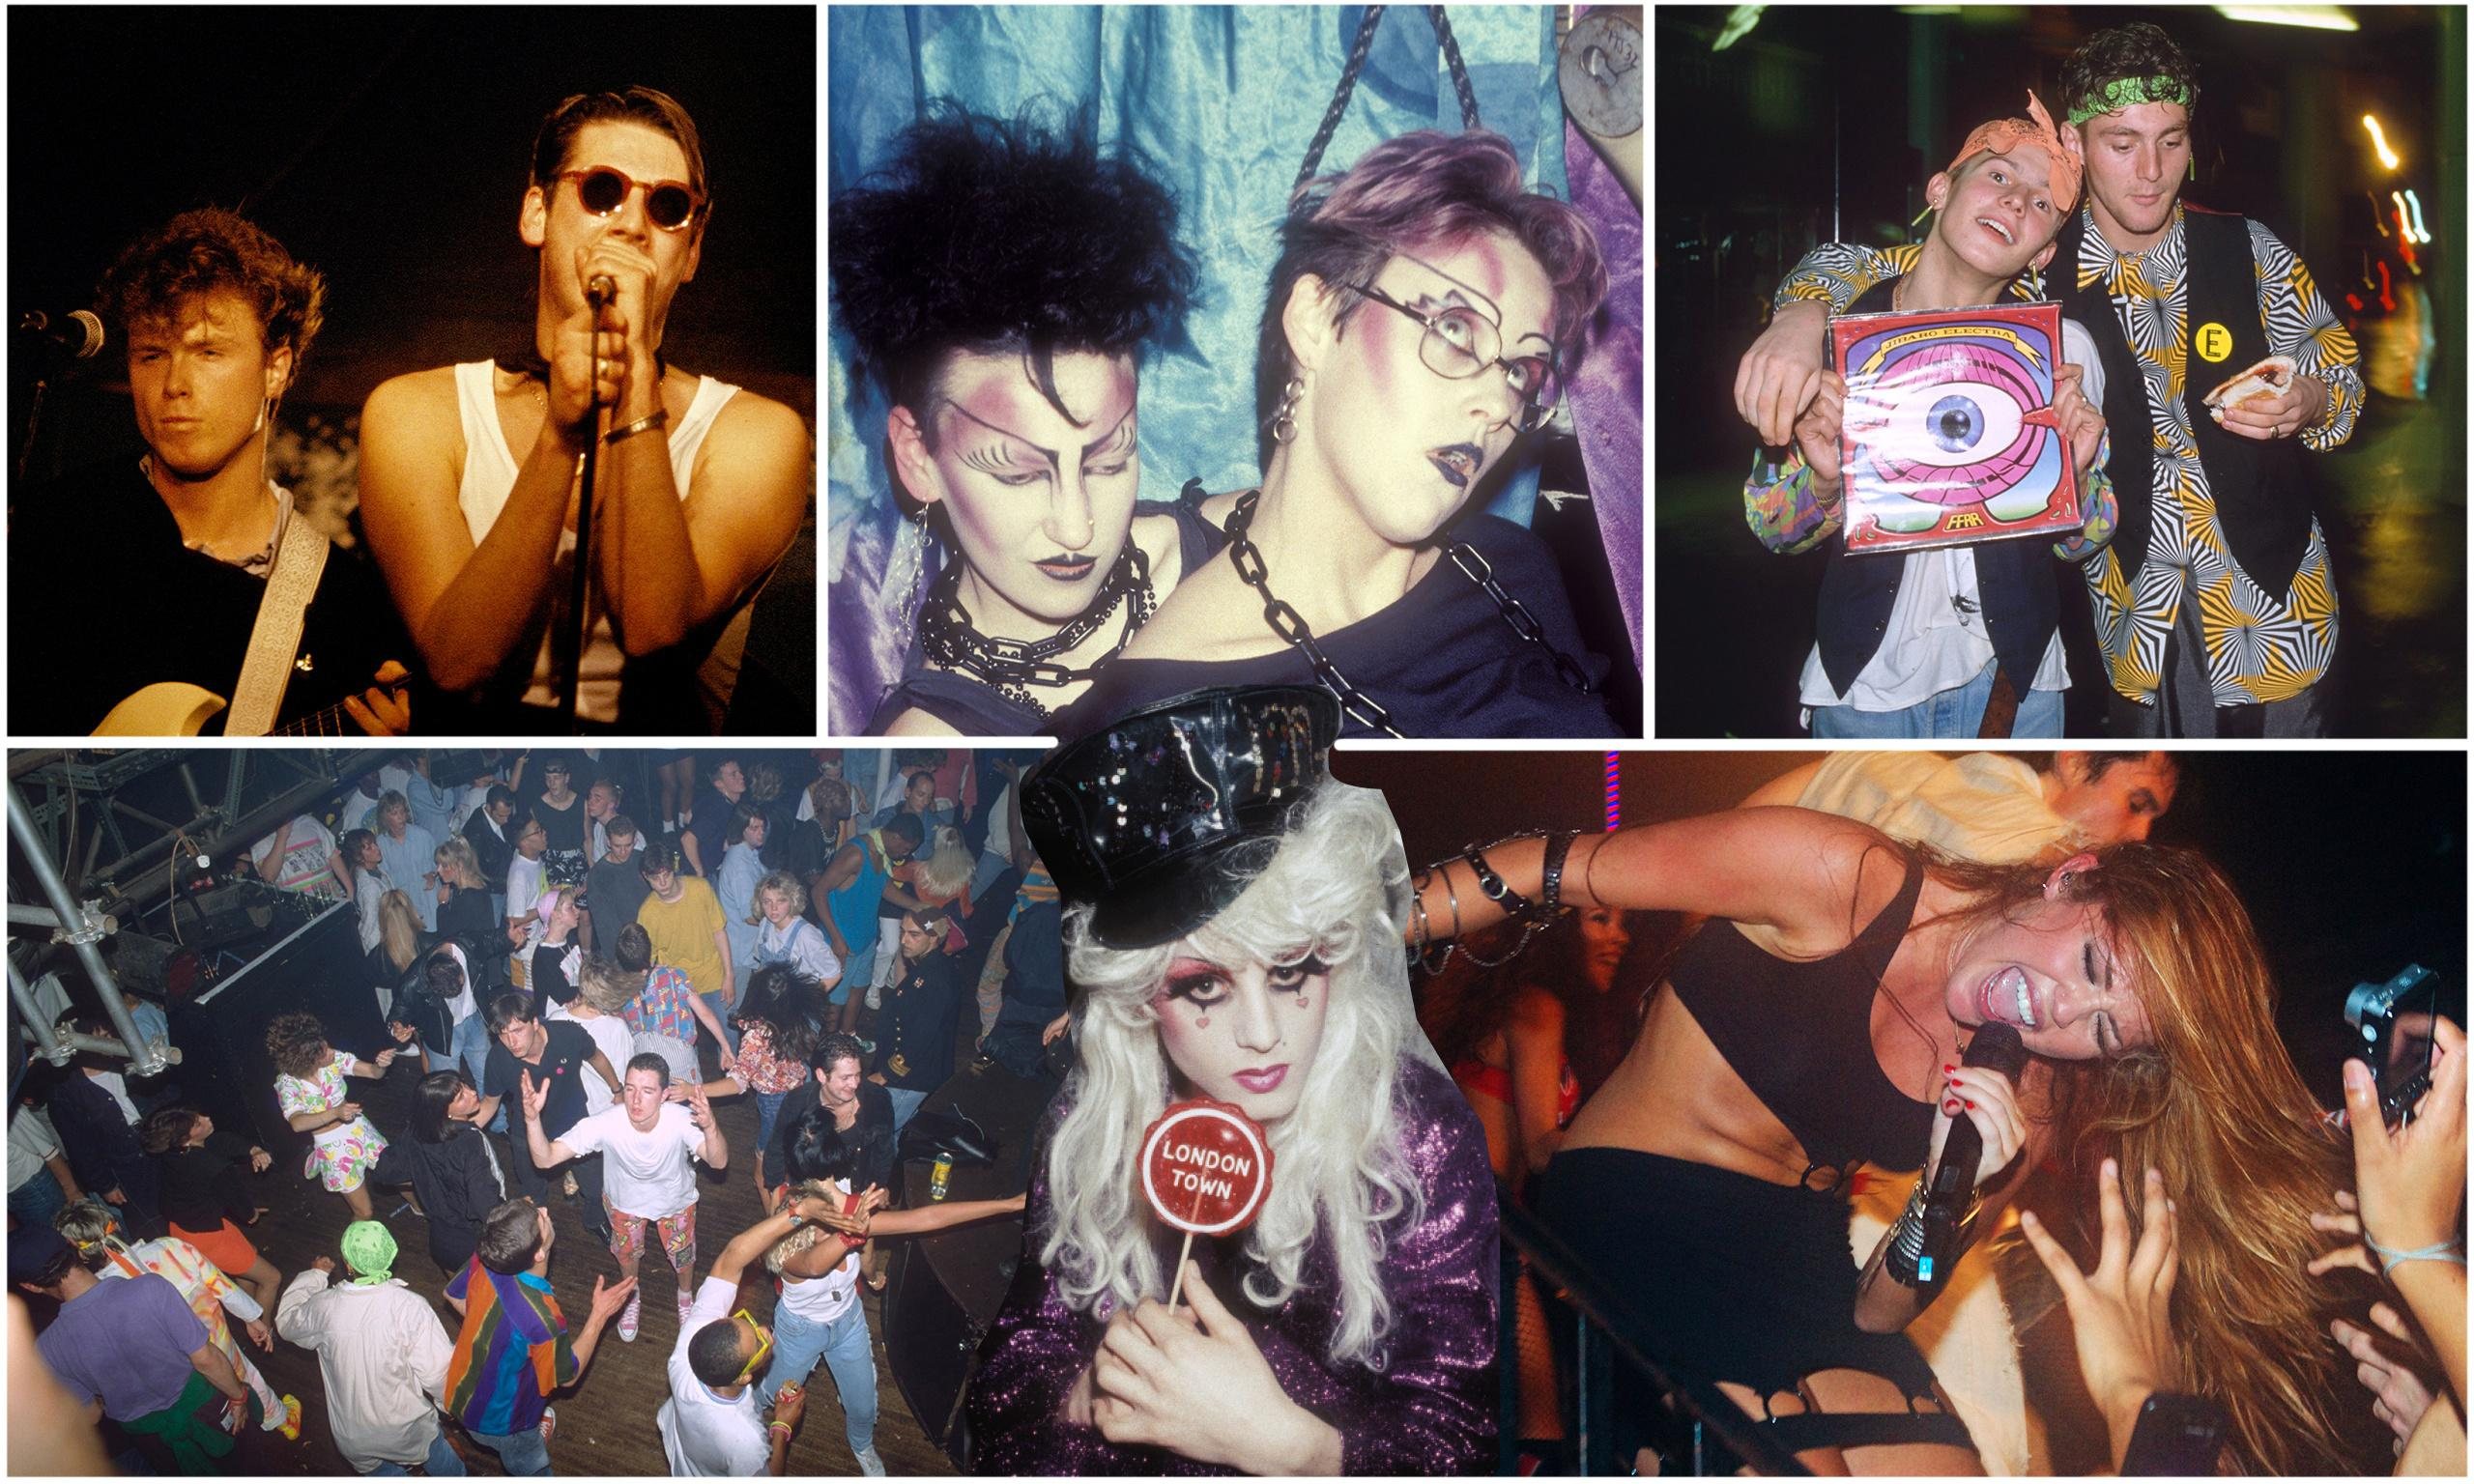 Forty years of sheer Heaven at the London superclub